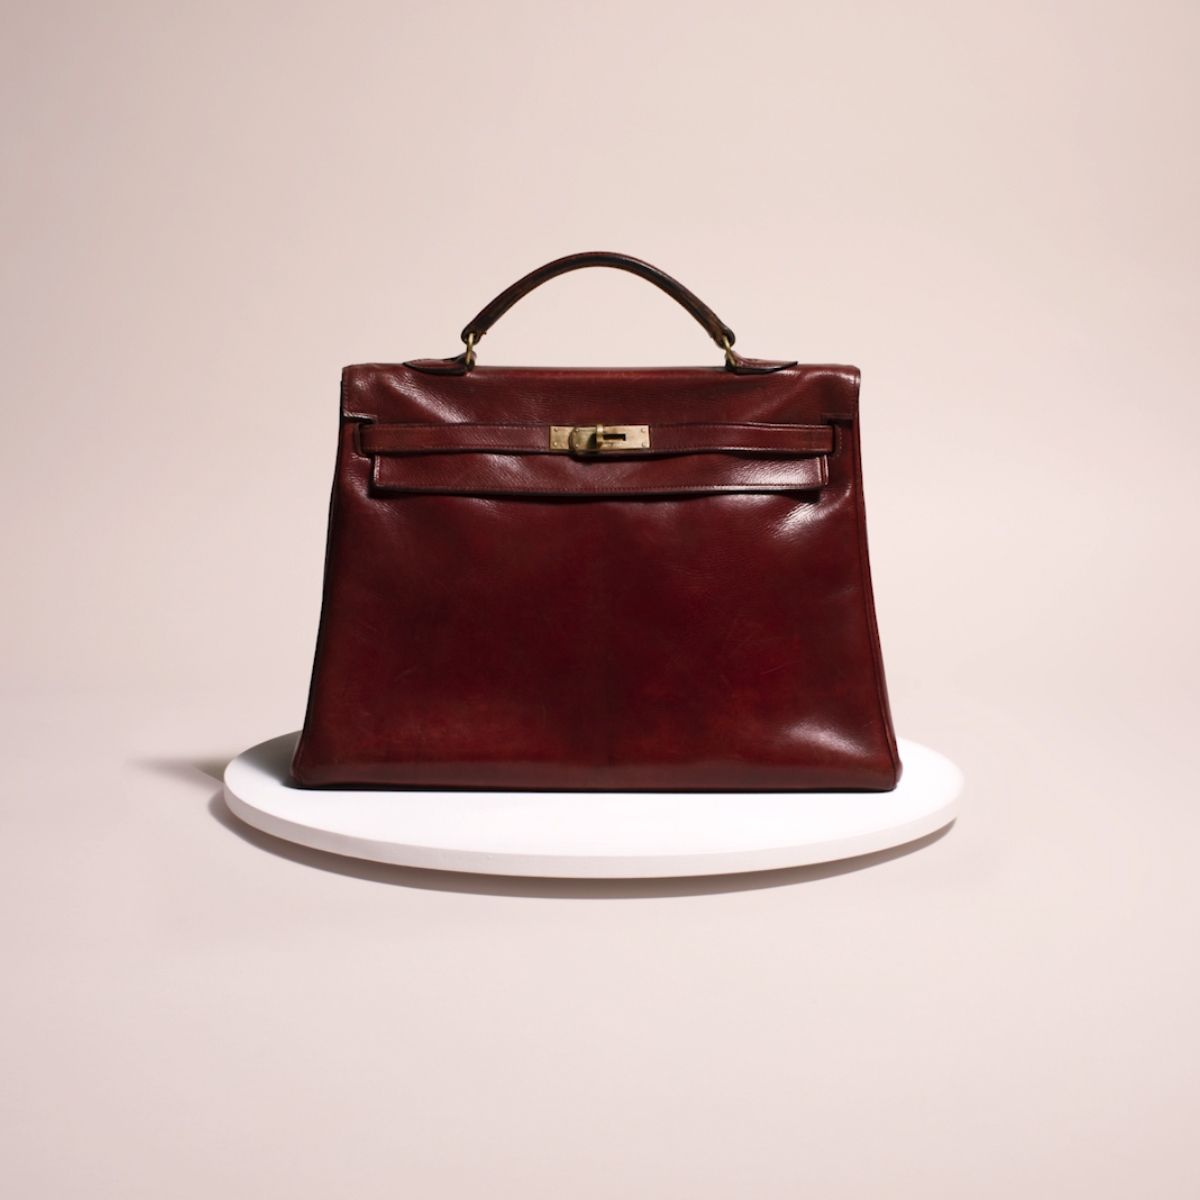 4867aeb6a Kelly bag| Hermès